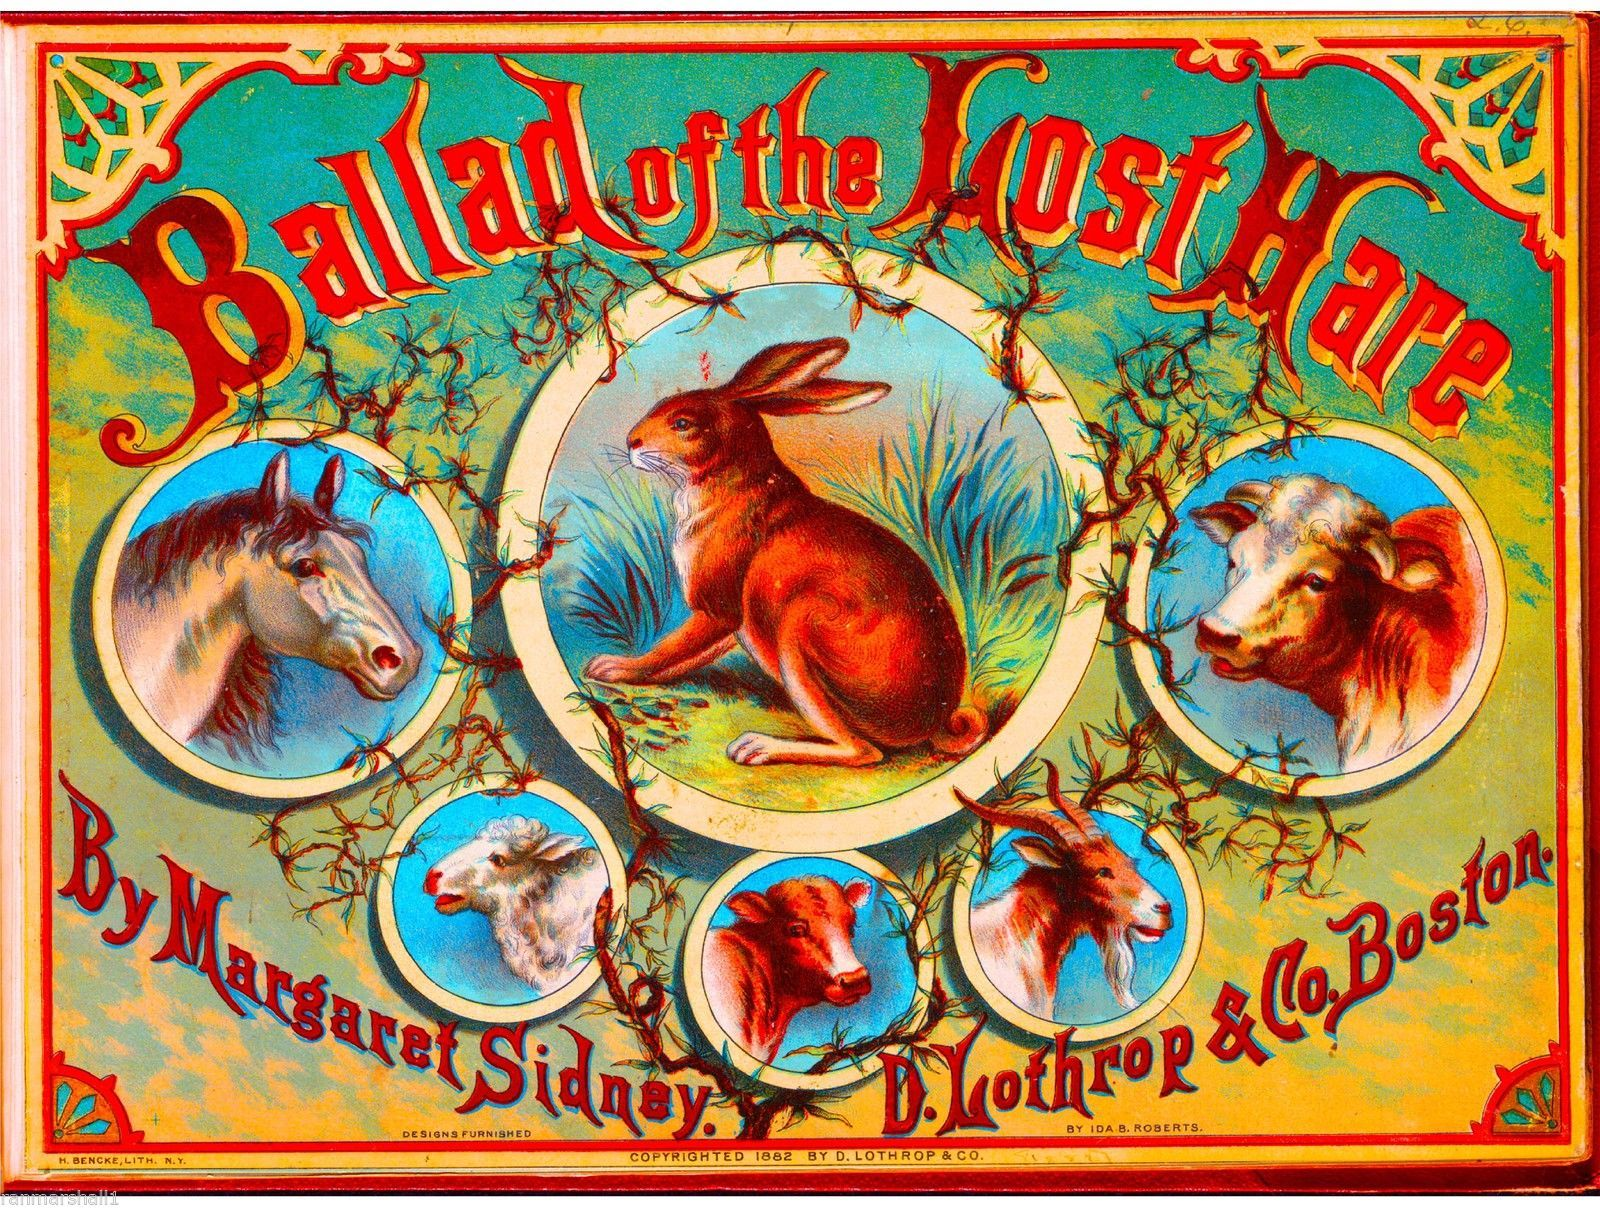 1885 Queen of the Ring Horse Smoke Vintage Cigar Tobacco Box Crate Label Print